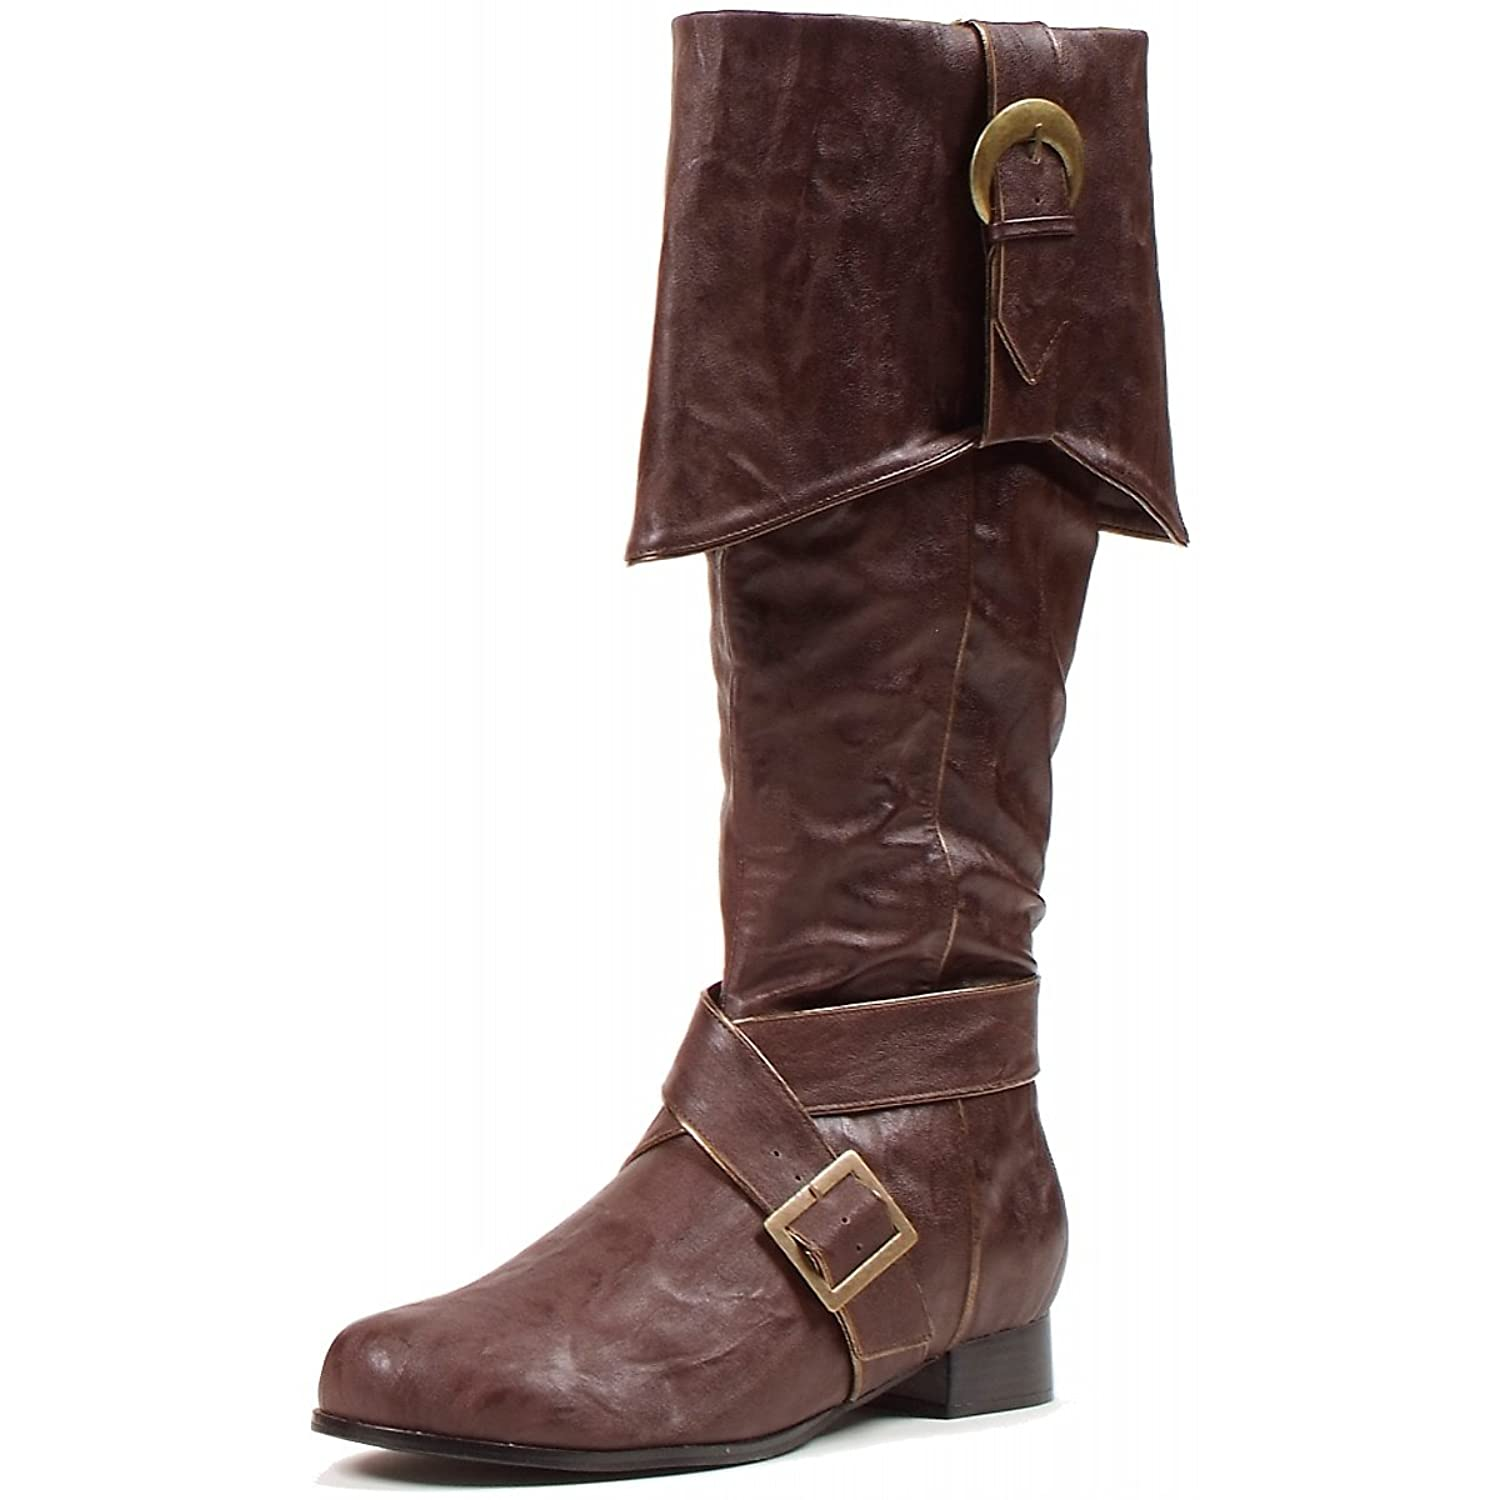 121-Jack Knee High Boots Costume Shoes - Large